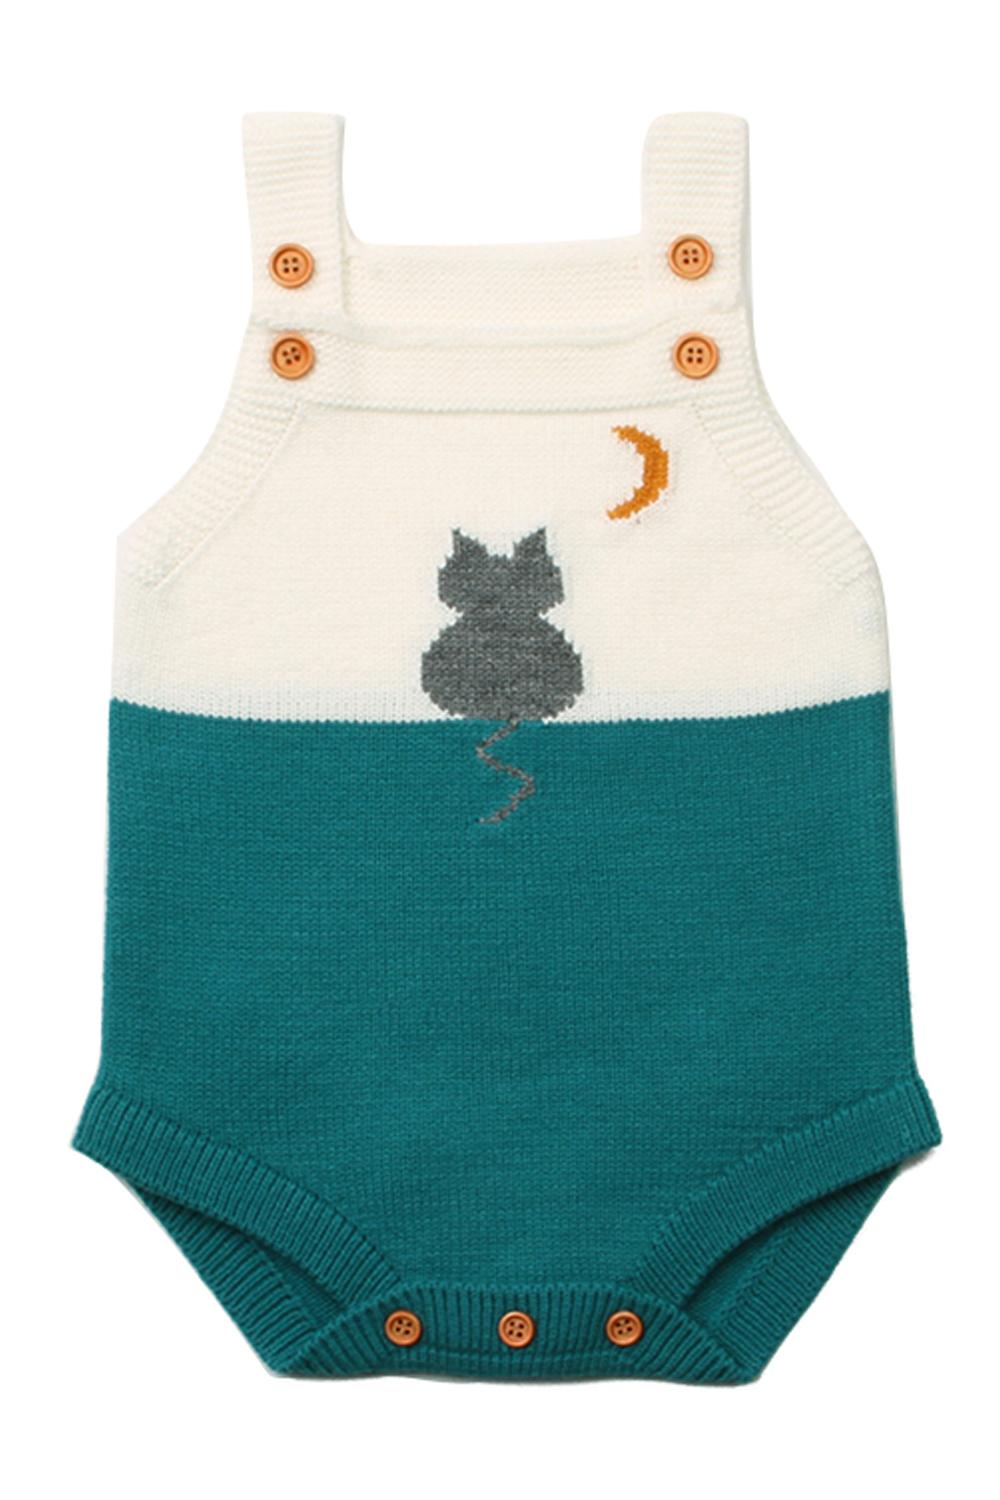 Green Cat Under the Moon Cotton Knit Infant Bodysuit